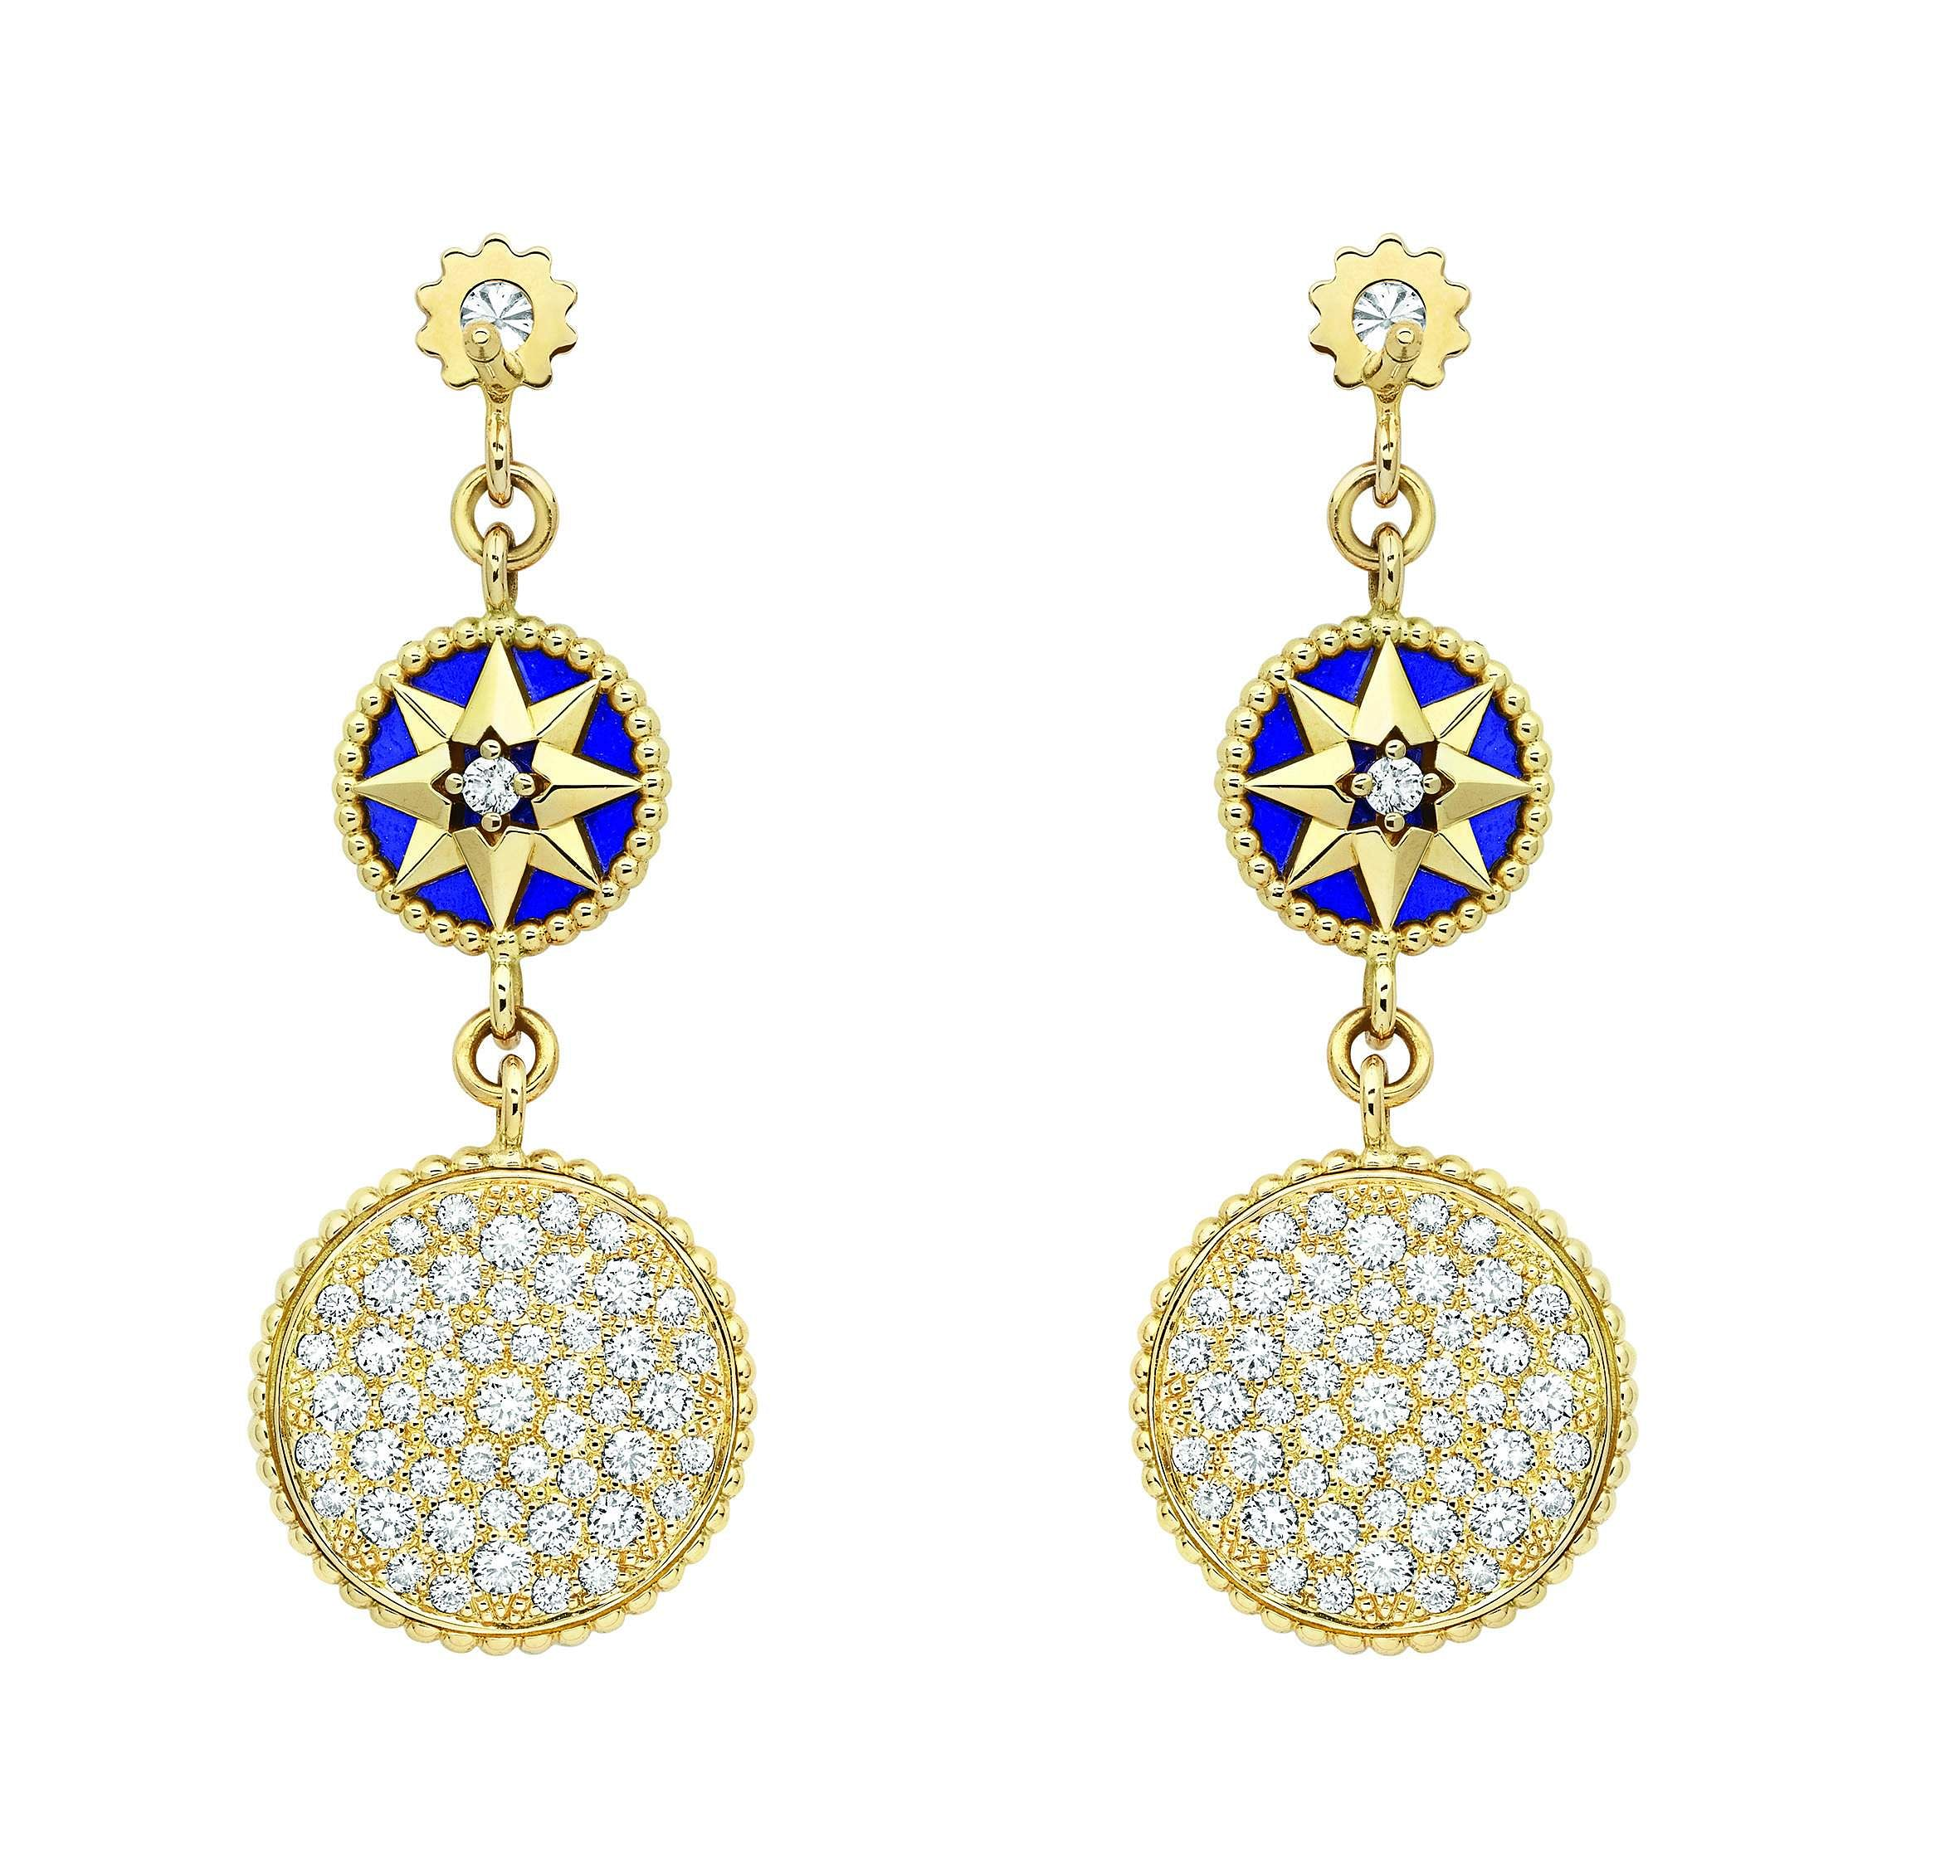 Rose des Vents earrings with yellow gold, diamonds and lapis lazuli